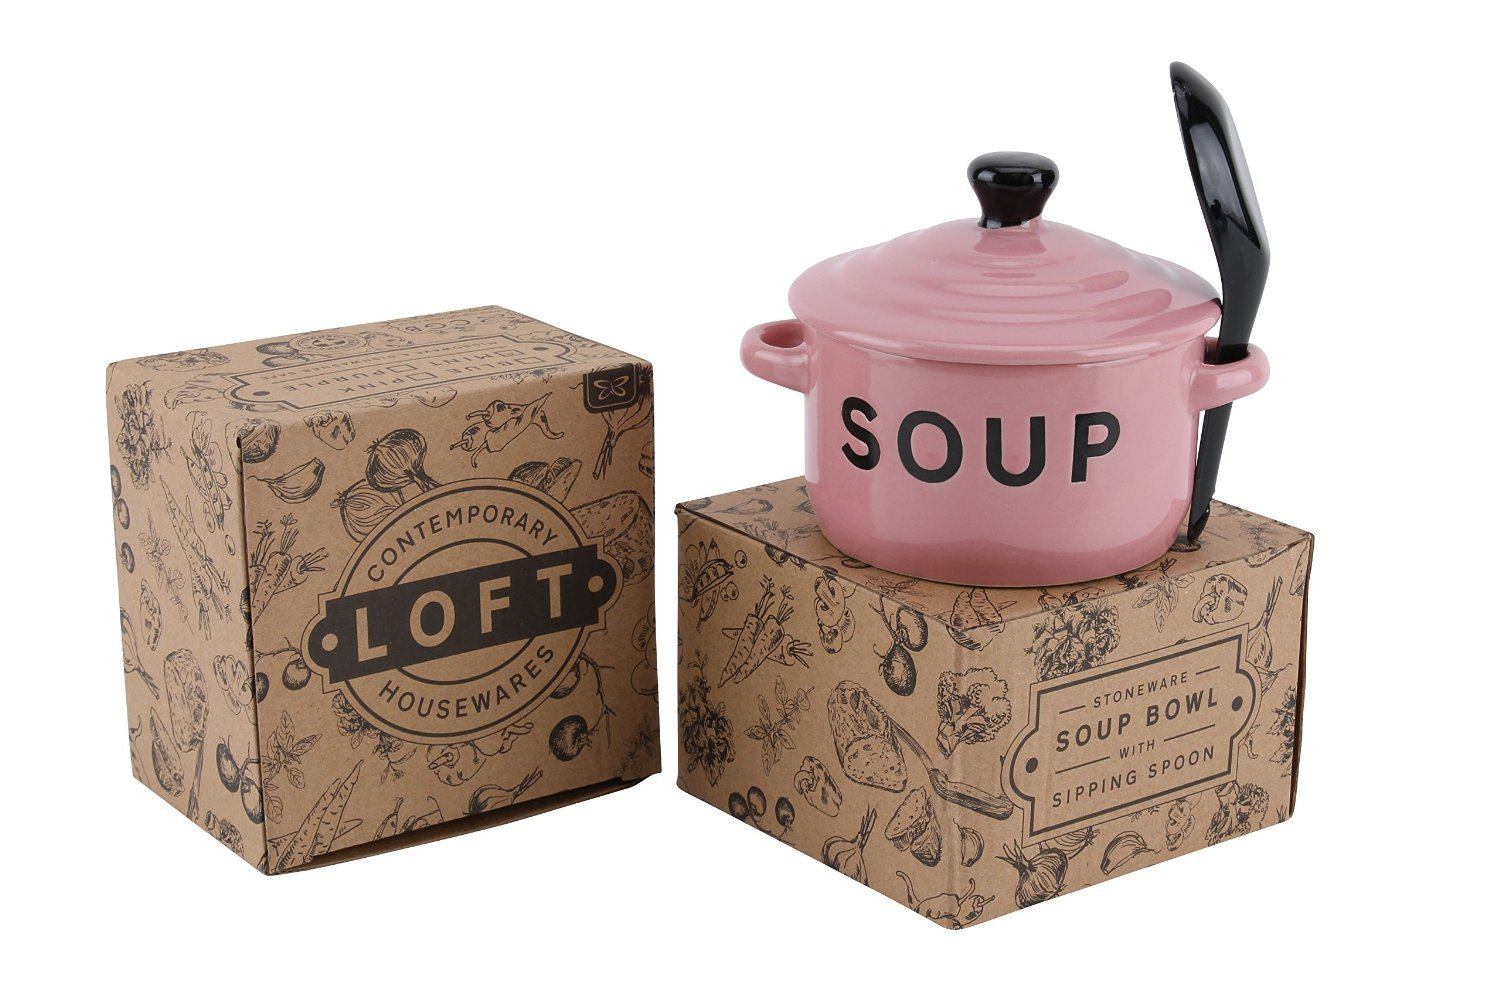 Contemporary Housewares Loft Stoneware Soup Bowl With Lid And Sipping Spoon ~ Pink Carousel Home